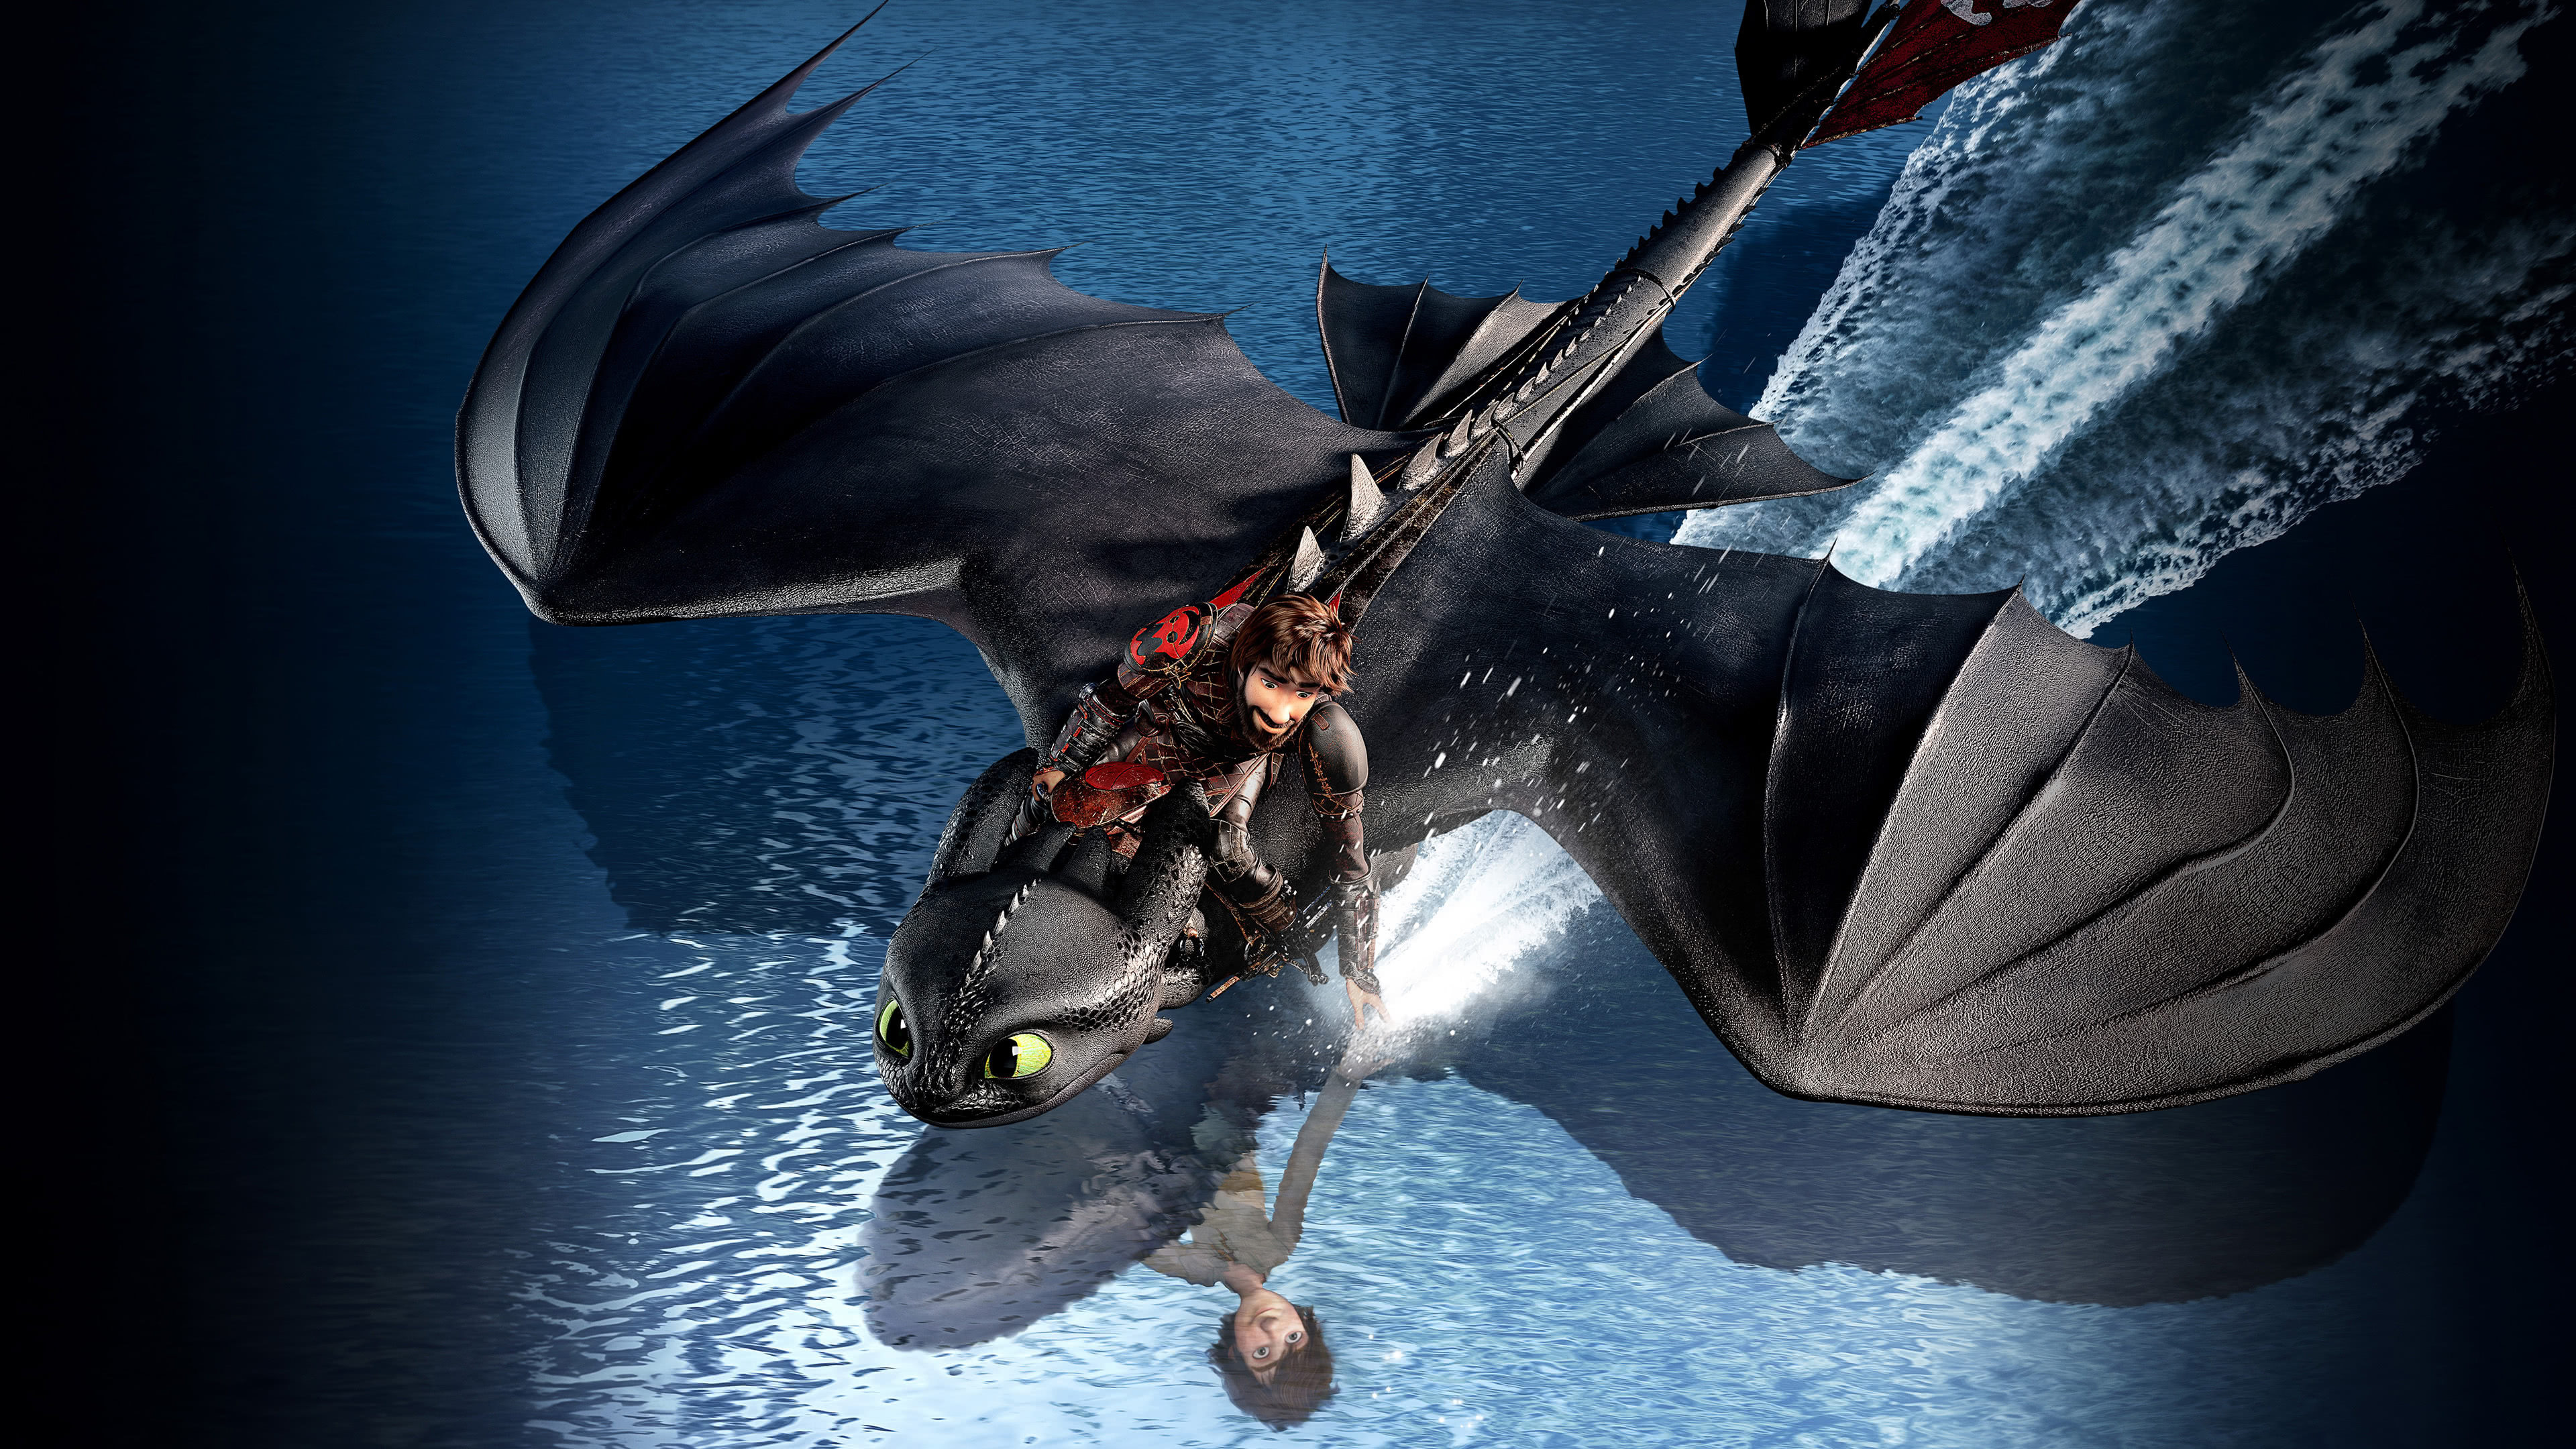 how to train your dragon the hidden world uhd 4k wallpaper